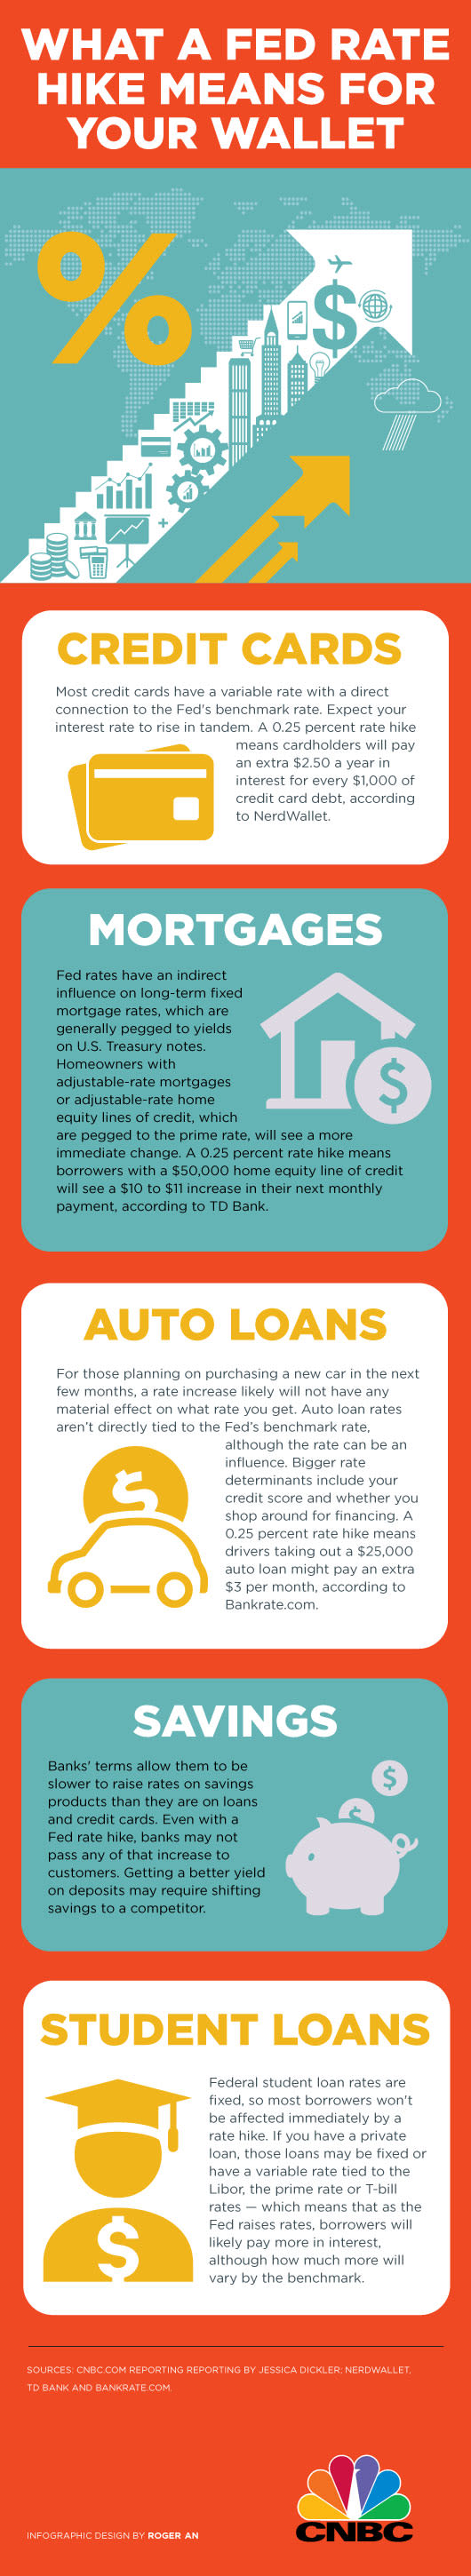 Fed rate hikes and your wallet INFOGRAPHIC